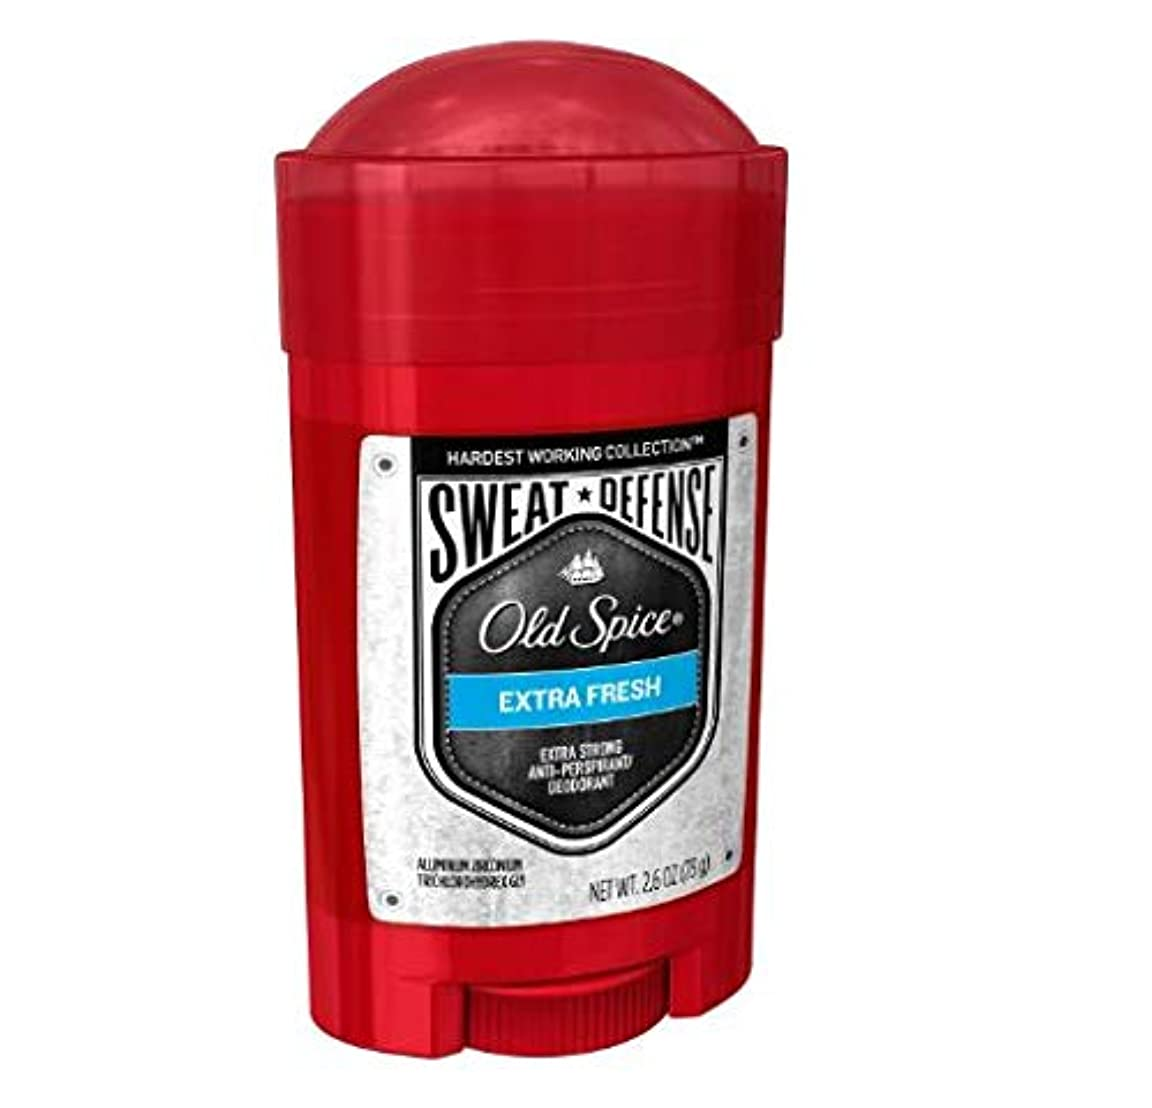 Old Spice Hardest Working Collection Sweat Defense Extra Fresh Antiperspirant and Deodorant - 2.6oz オールドスパイス ハーデスト...